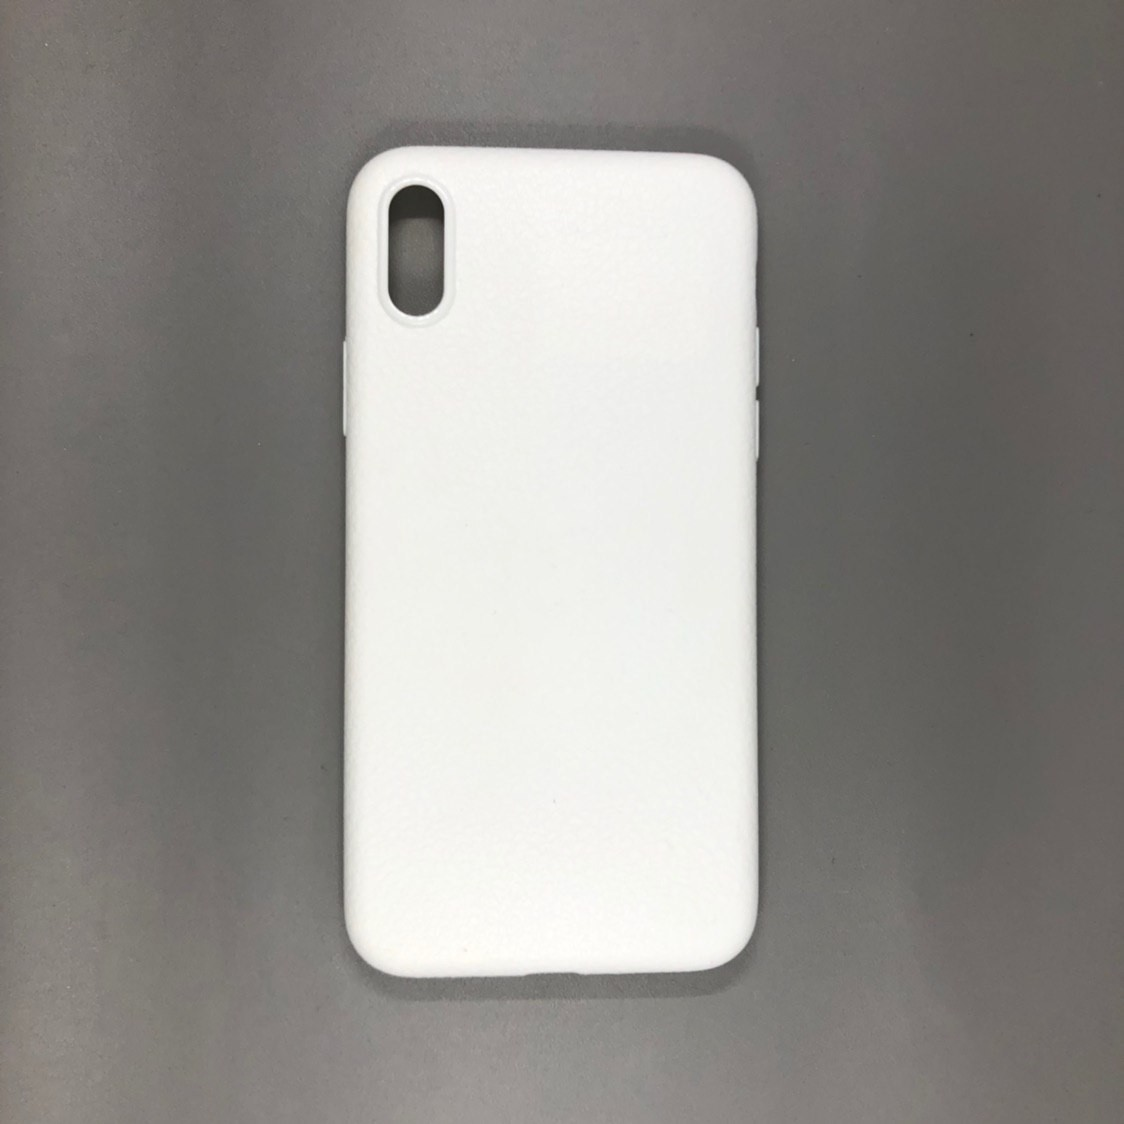 iPhone X Plastic White